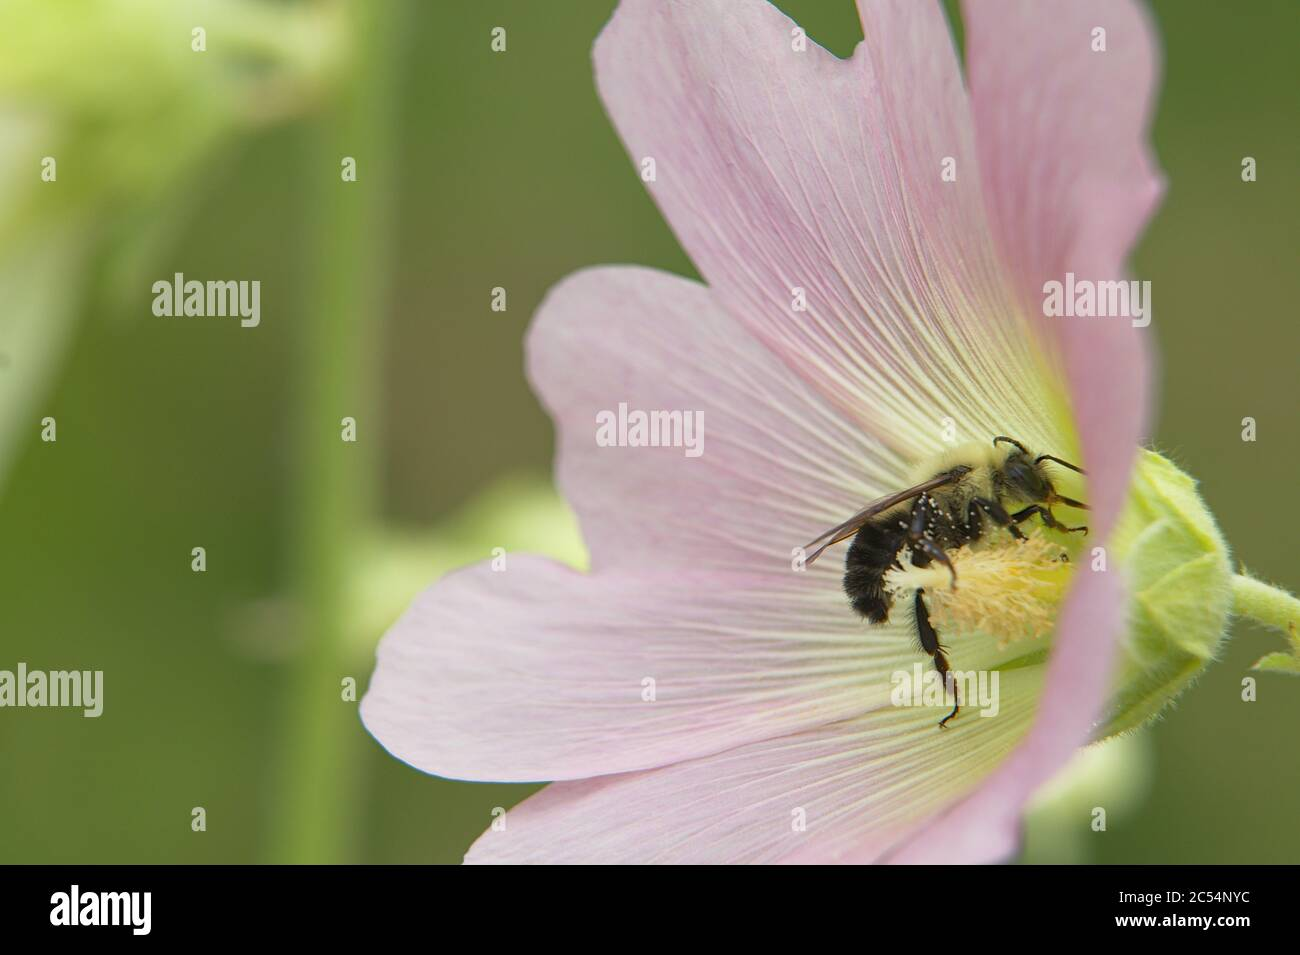 Macro of large light pink flower head with bumble bee on stigma Stock Photo